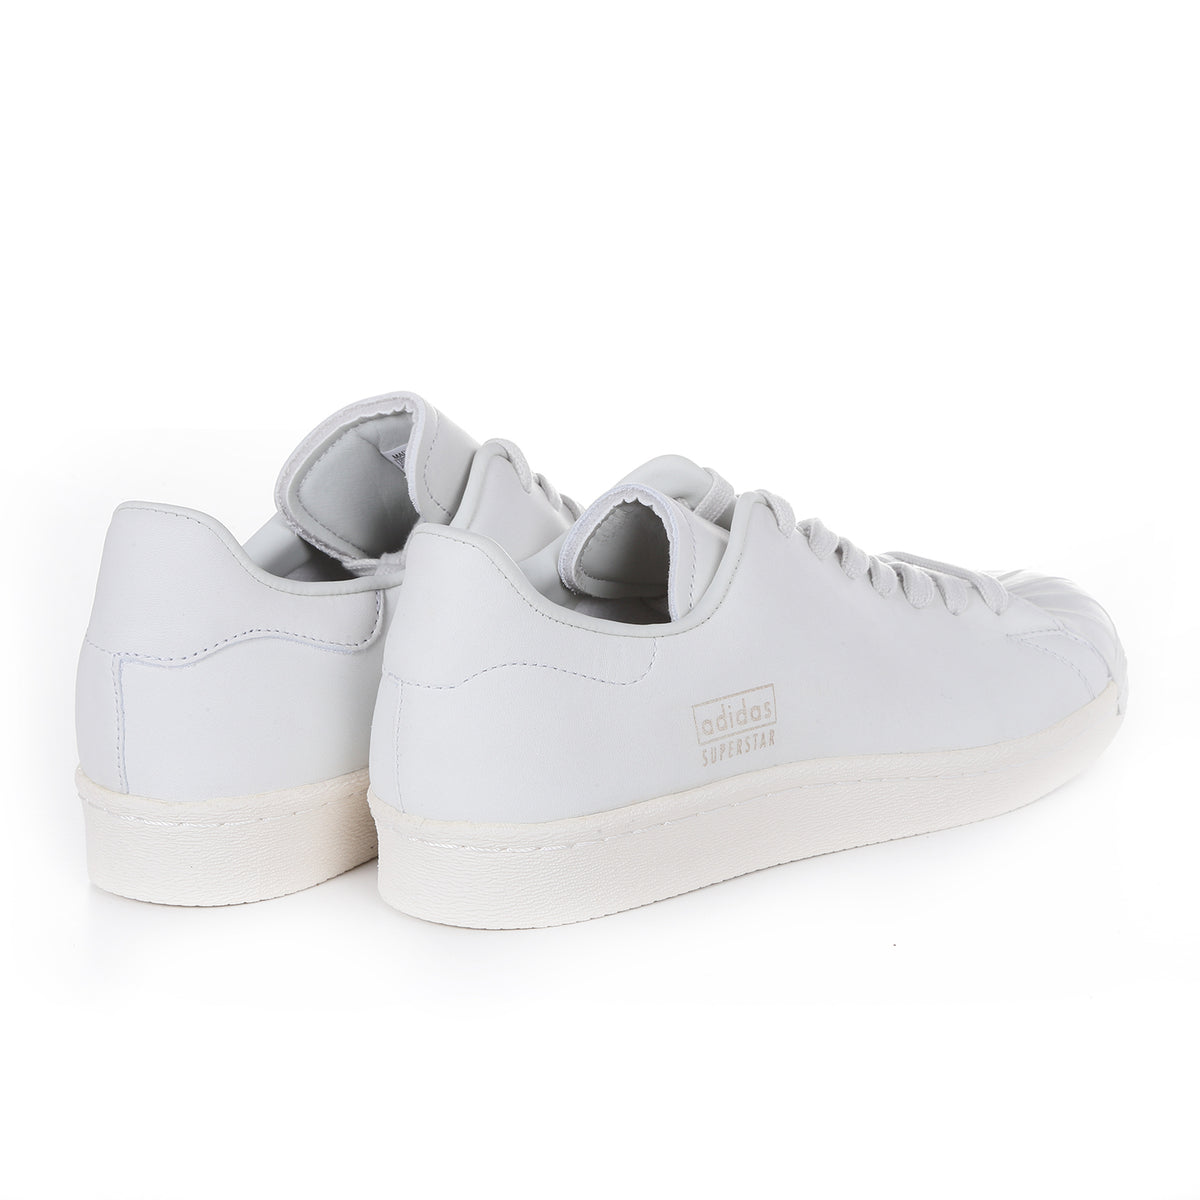 Adidas - Superstars 80's Clean - Crystal White/Off White